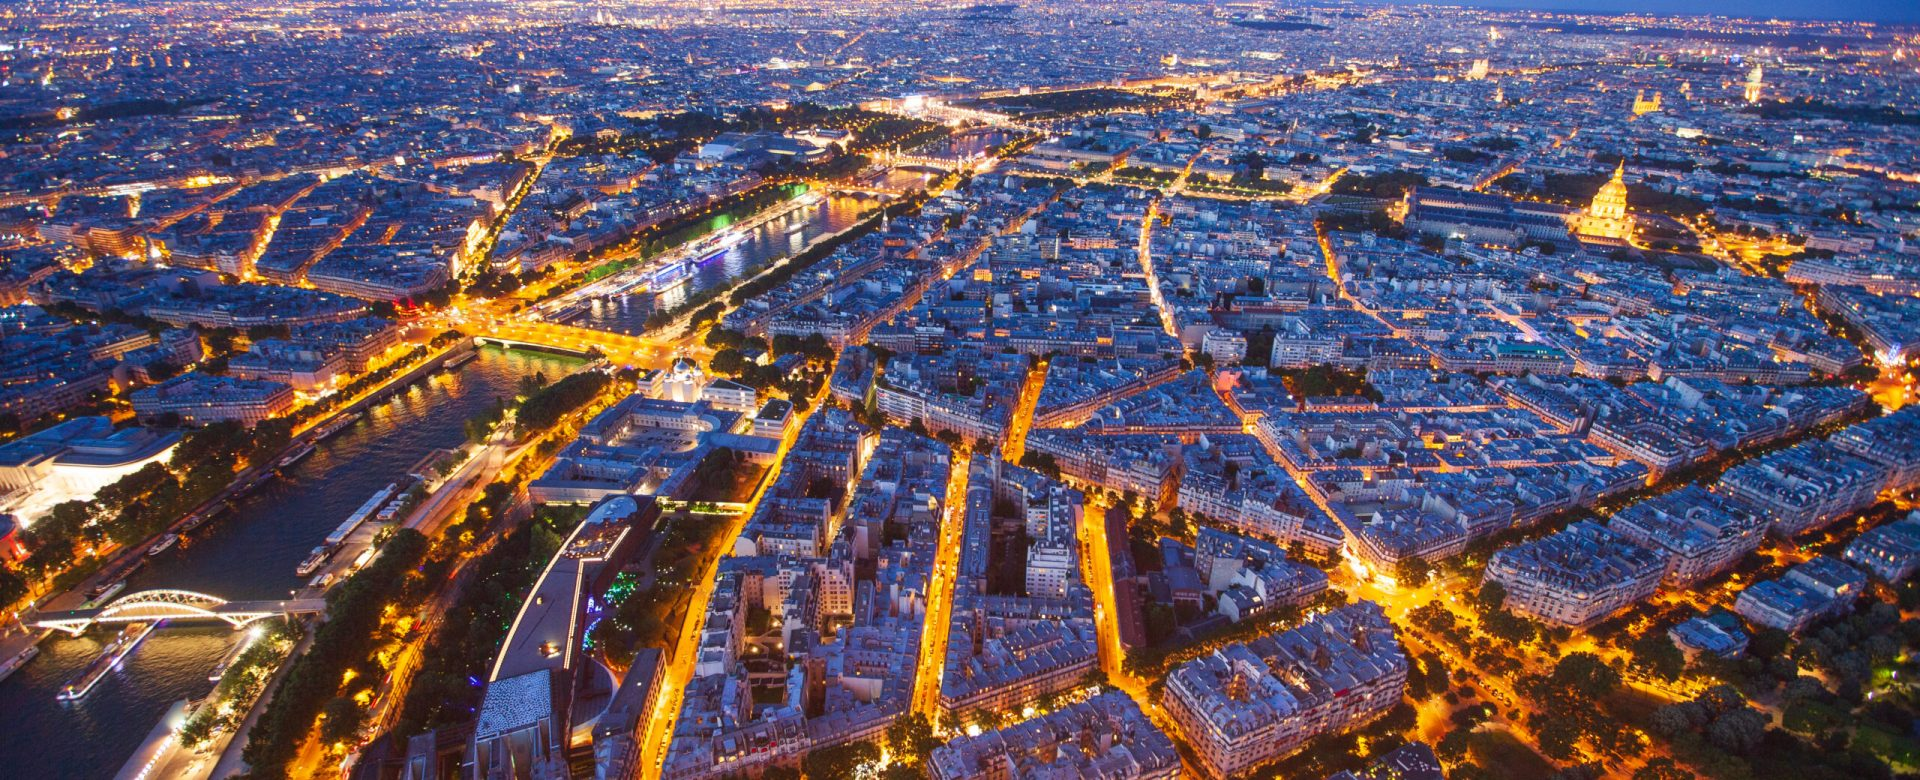 Paris at night. View from Eiffel tower at night